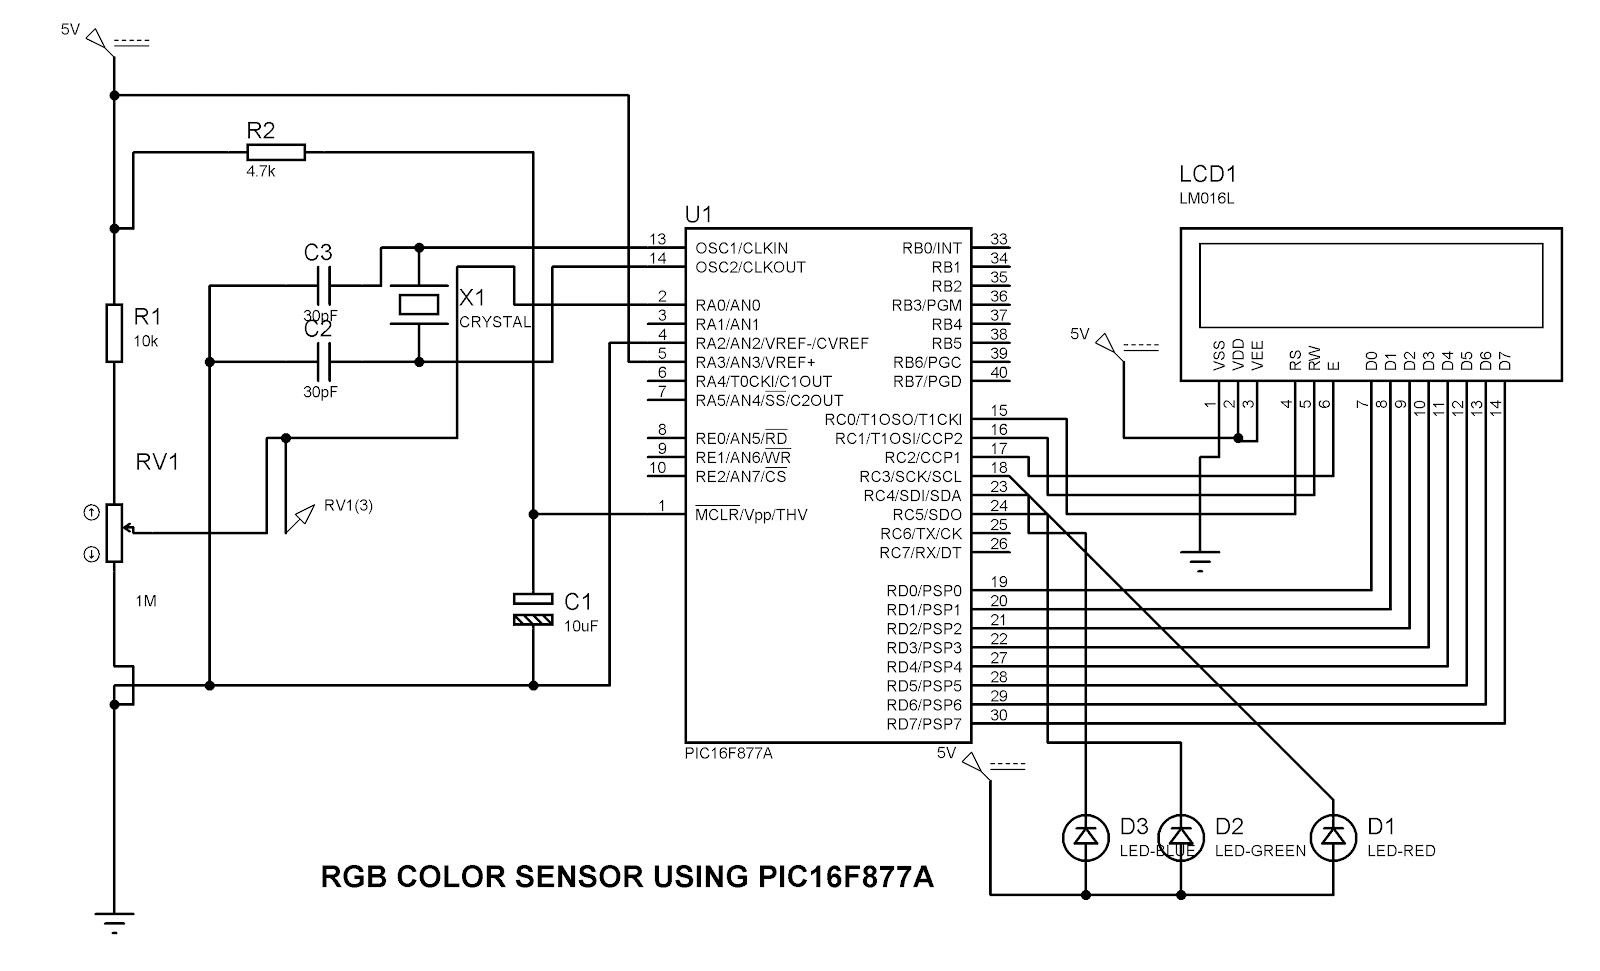 rgb color sensor using pic16f877a